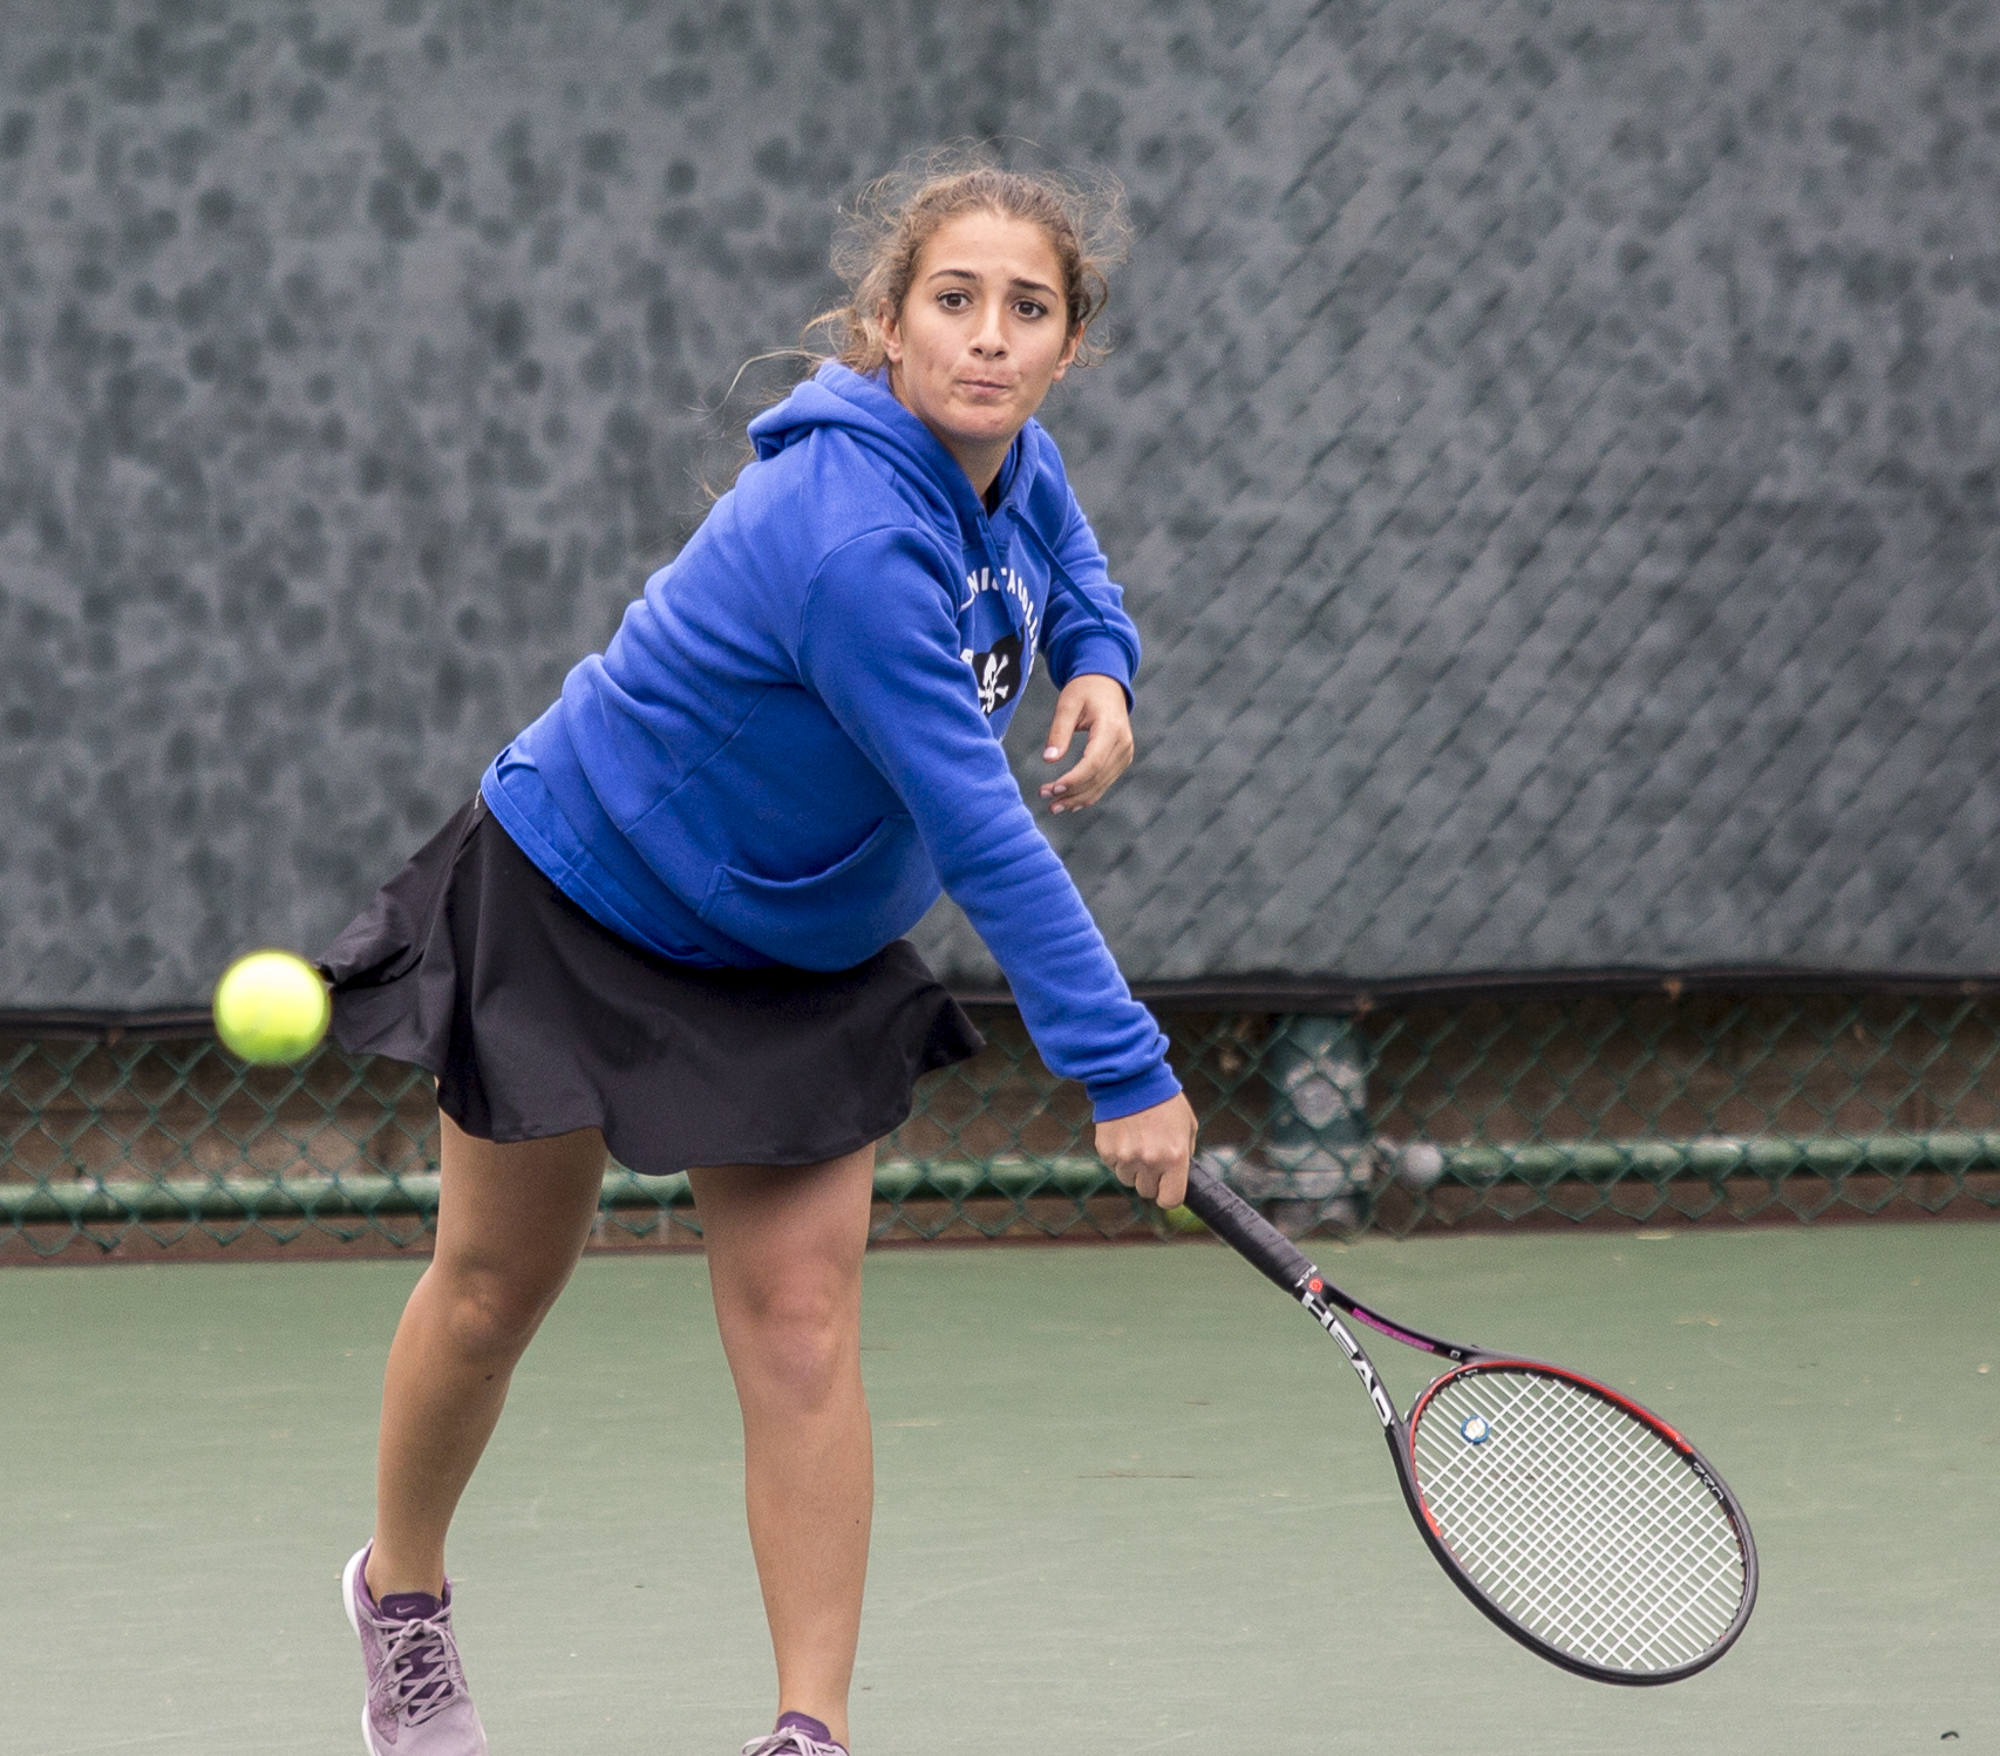 Santa Monica College Corsair freshman Mina Girit (#1, doubles) serves the ball conservatively during her doubles match against her Glendale City College Vaquero opponents consisting of sophomore Srna Lepchevska (cq) and sophomore Hailey McNall (cq) at the Ocean View Park Tennis Courts in Santa Monica, California on Tuesday, March 20 2018. The single set that Girit and her partner played consisted of a 2 – 8 set loss, which contributed to the 0-6 match loss for the team. (Matthew Martin/Corsair Photo).